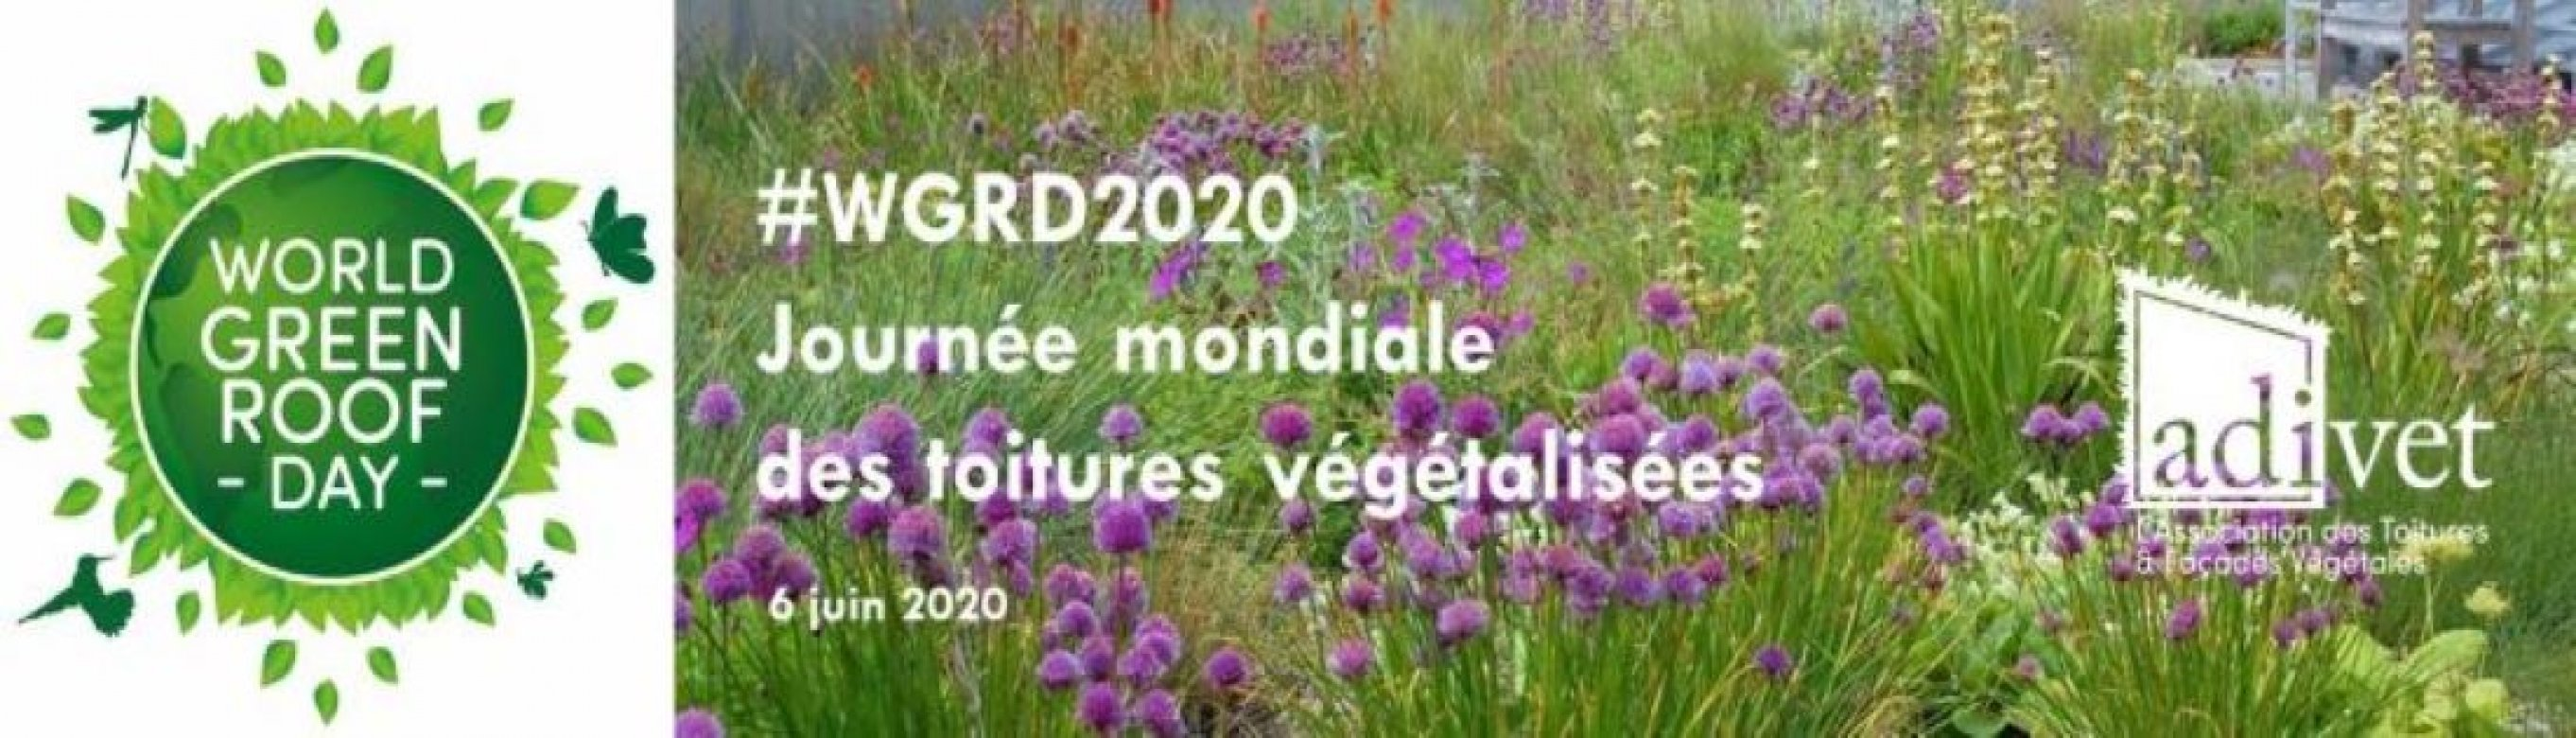 World Green Roof Day 2020 et ADIVET